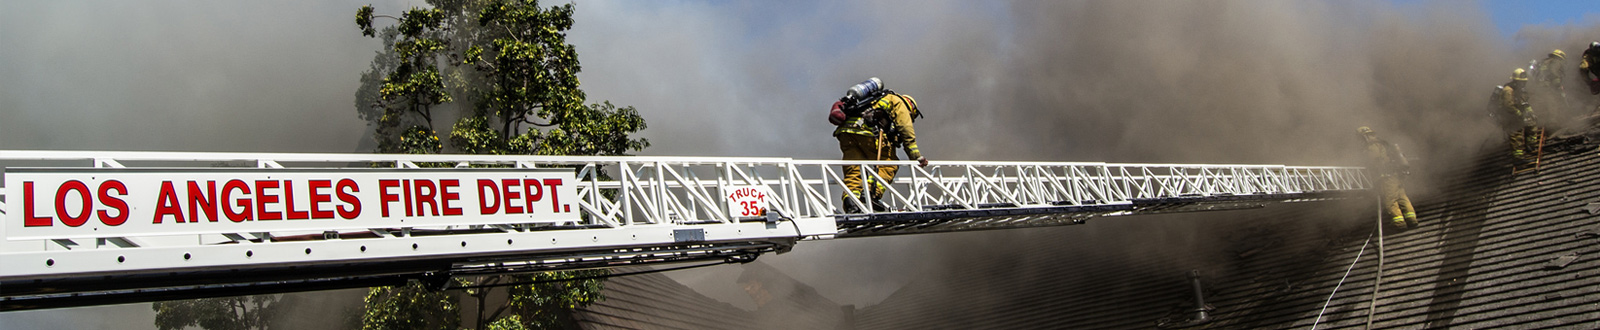 A firefighter walks across a large ladder to a roof of a burning house